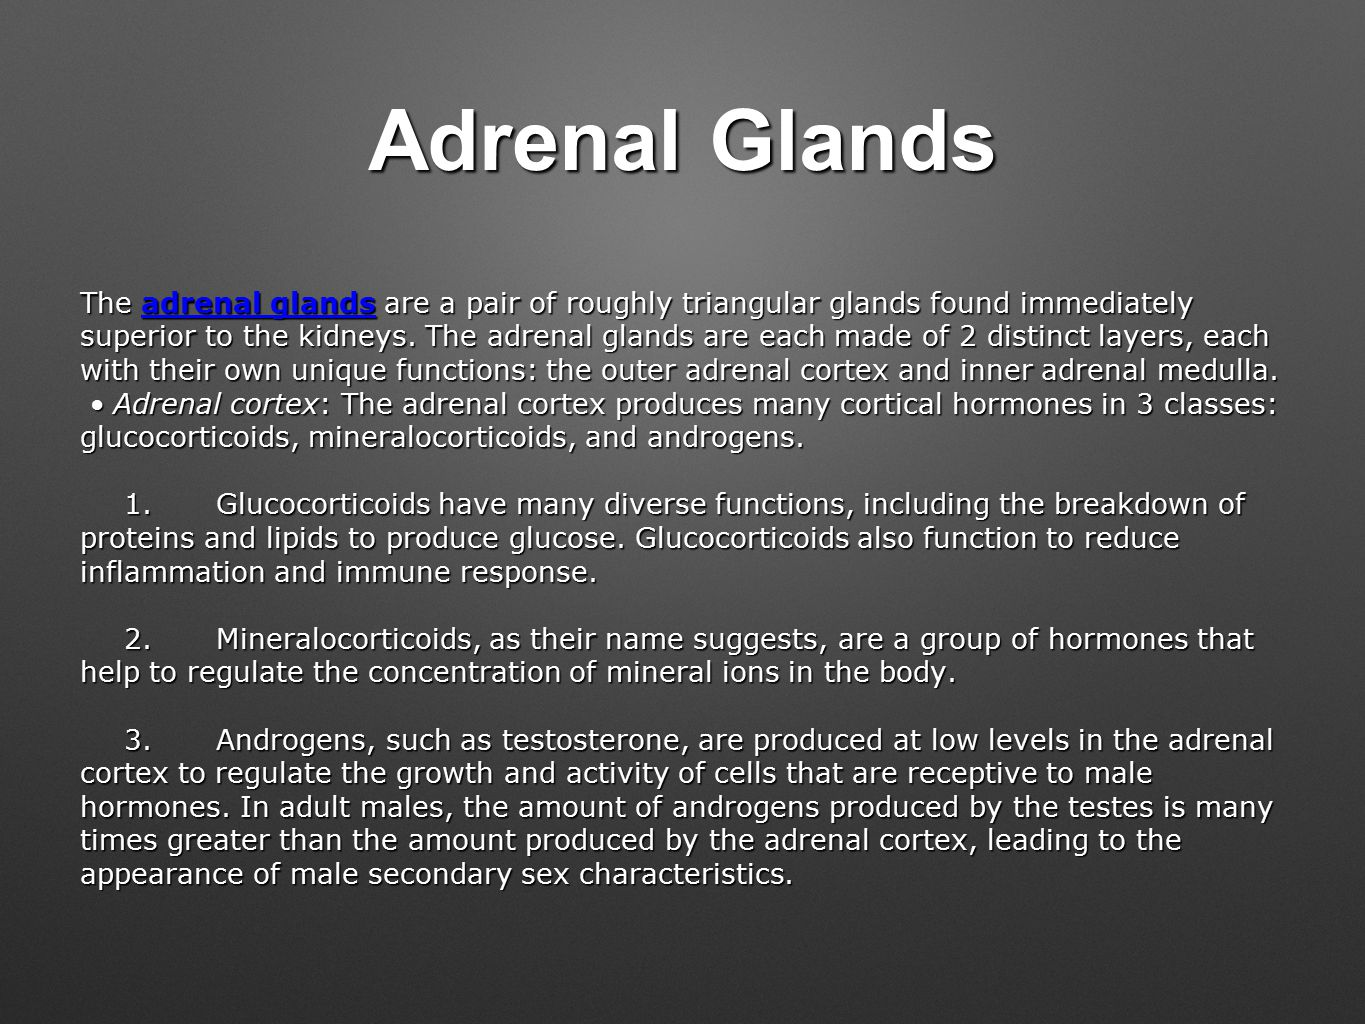 Adrenal Glands The adrenal glands are a pair of roughly triangular glands found immediately superior to the kidneys.